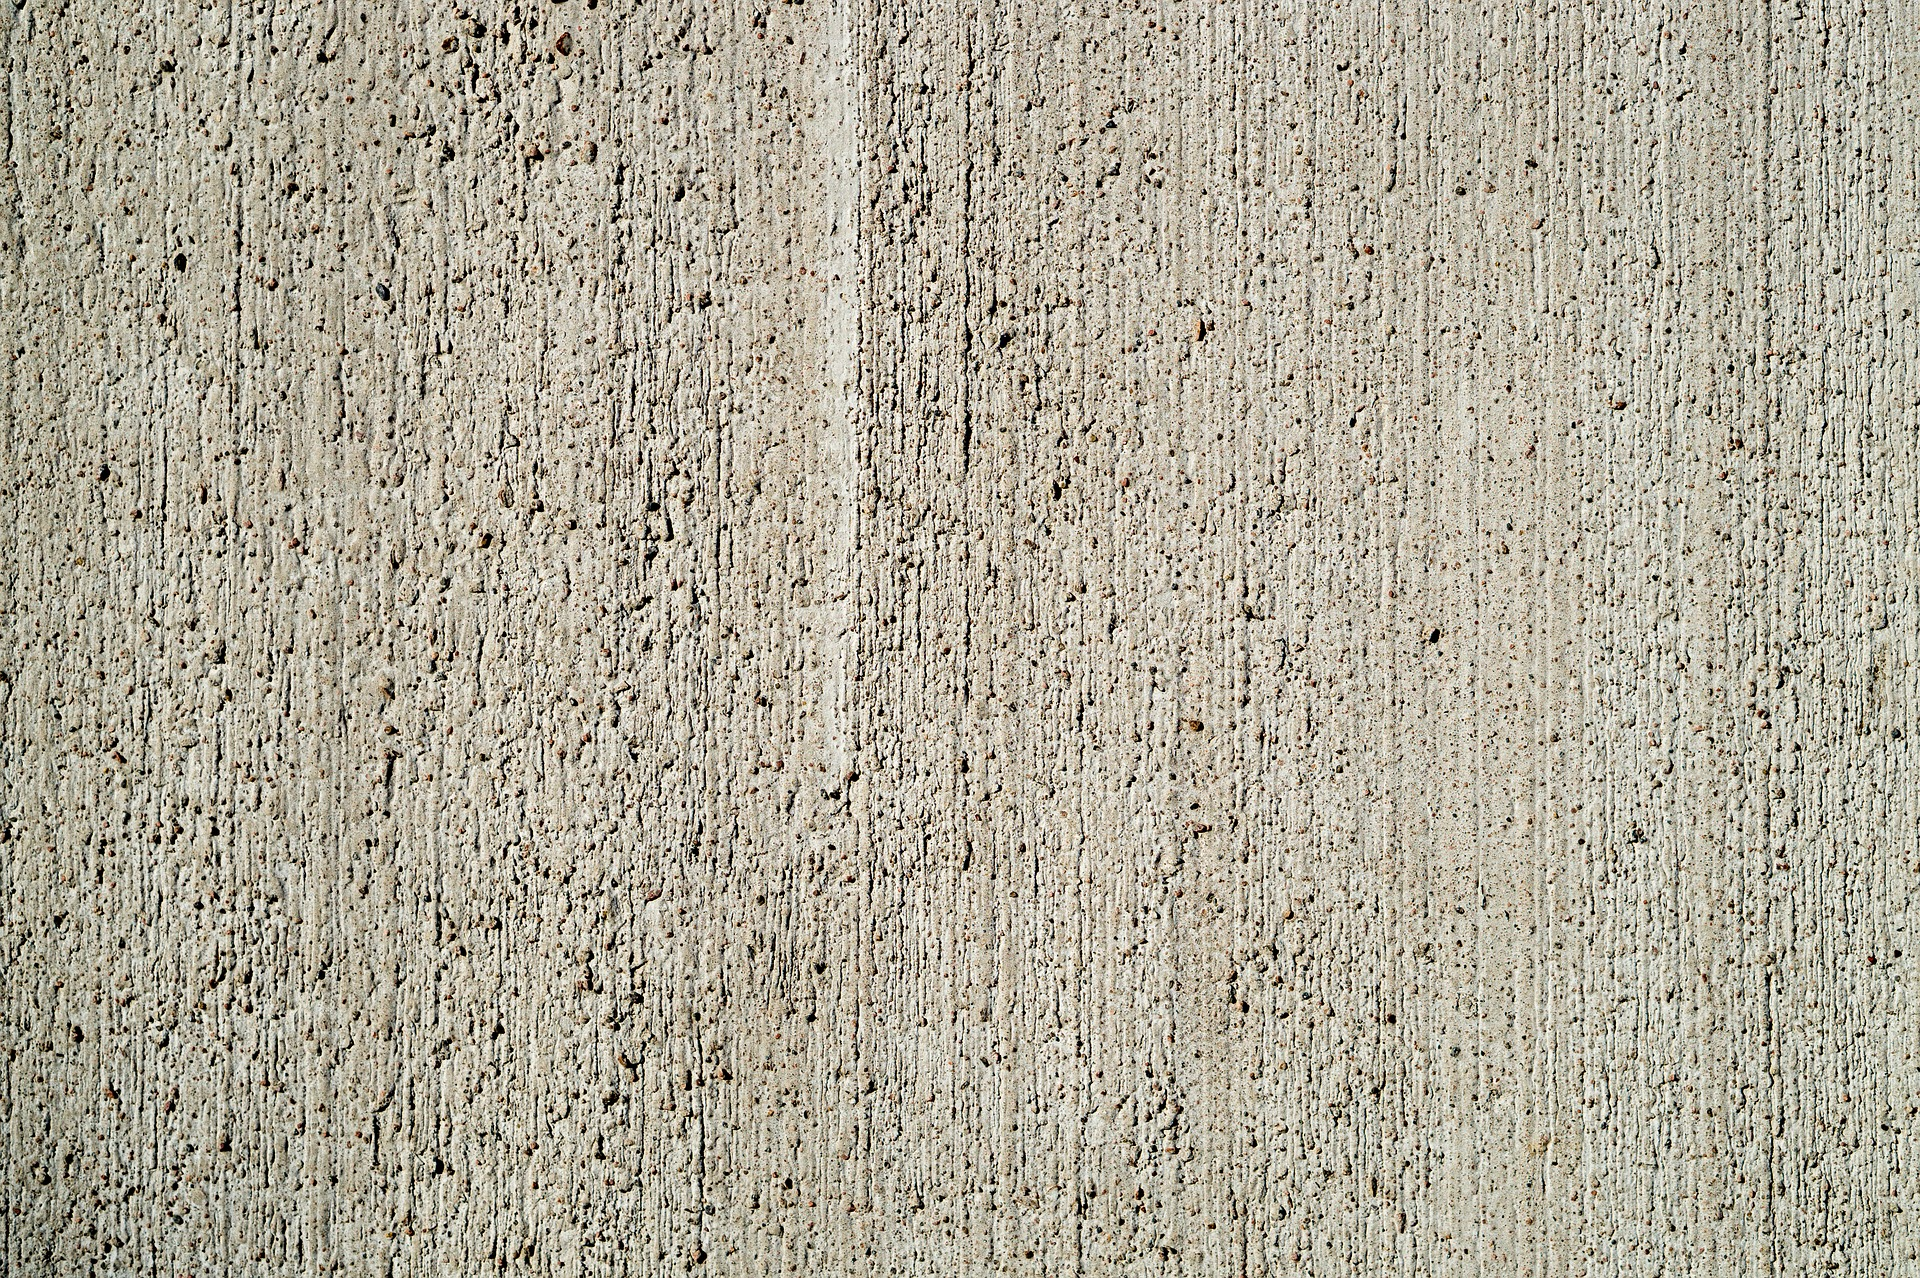 Wall Texture, Design, Grunge, Grungy, Stone, HQ Photo